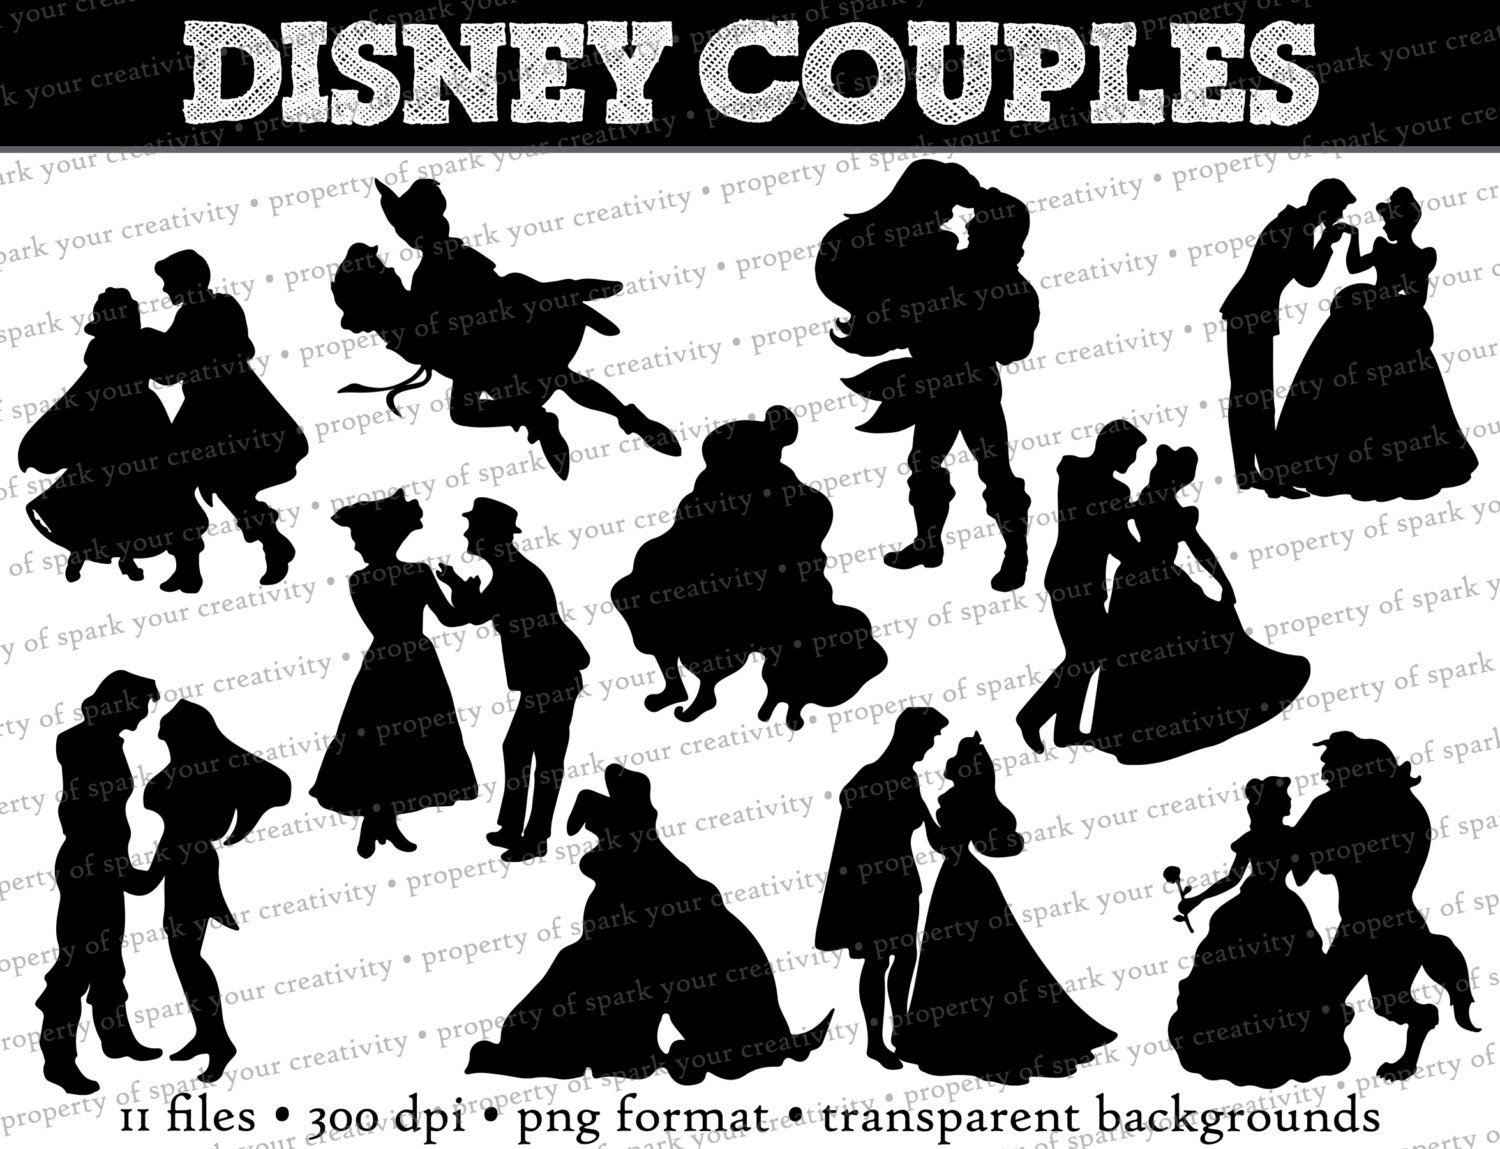 Disney Princess and Prince Silhouettes Disney Couples